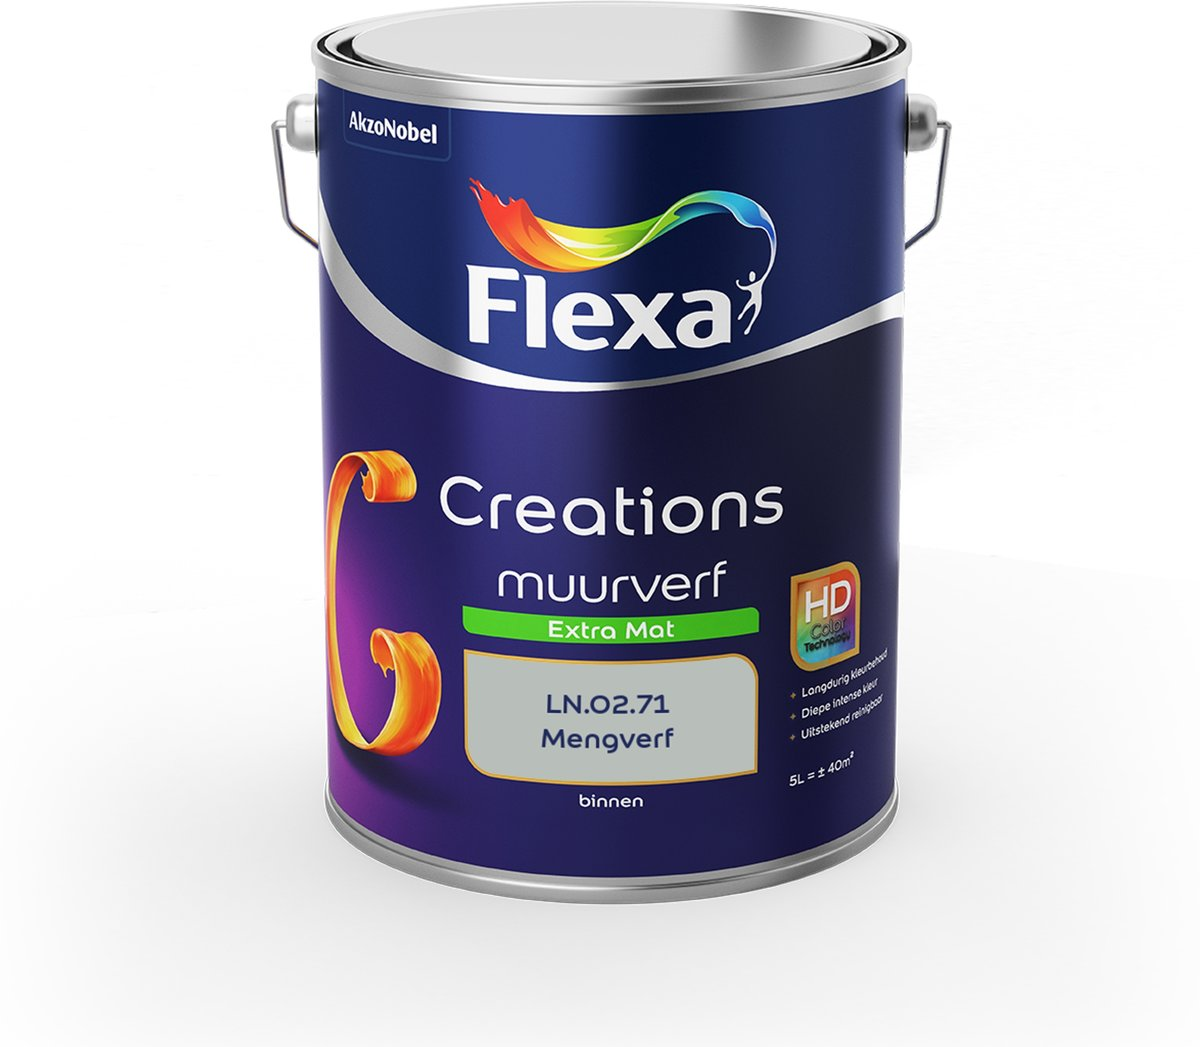 Flexa Creations Muurverf - Extra Mat - Colorfutures 2019 - LN.02.71 - 5 liter